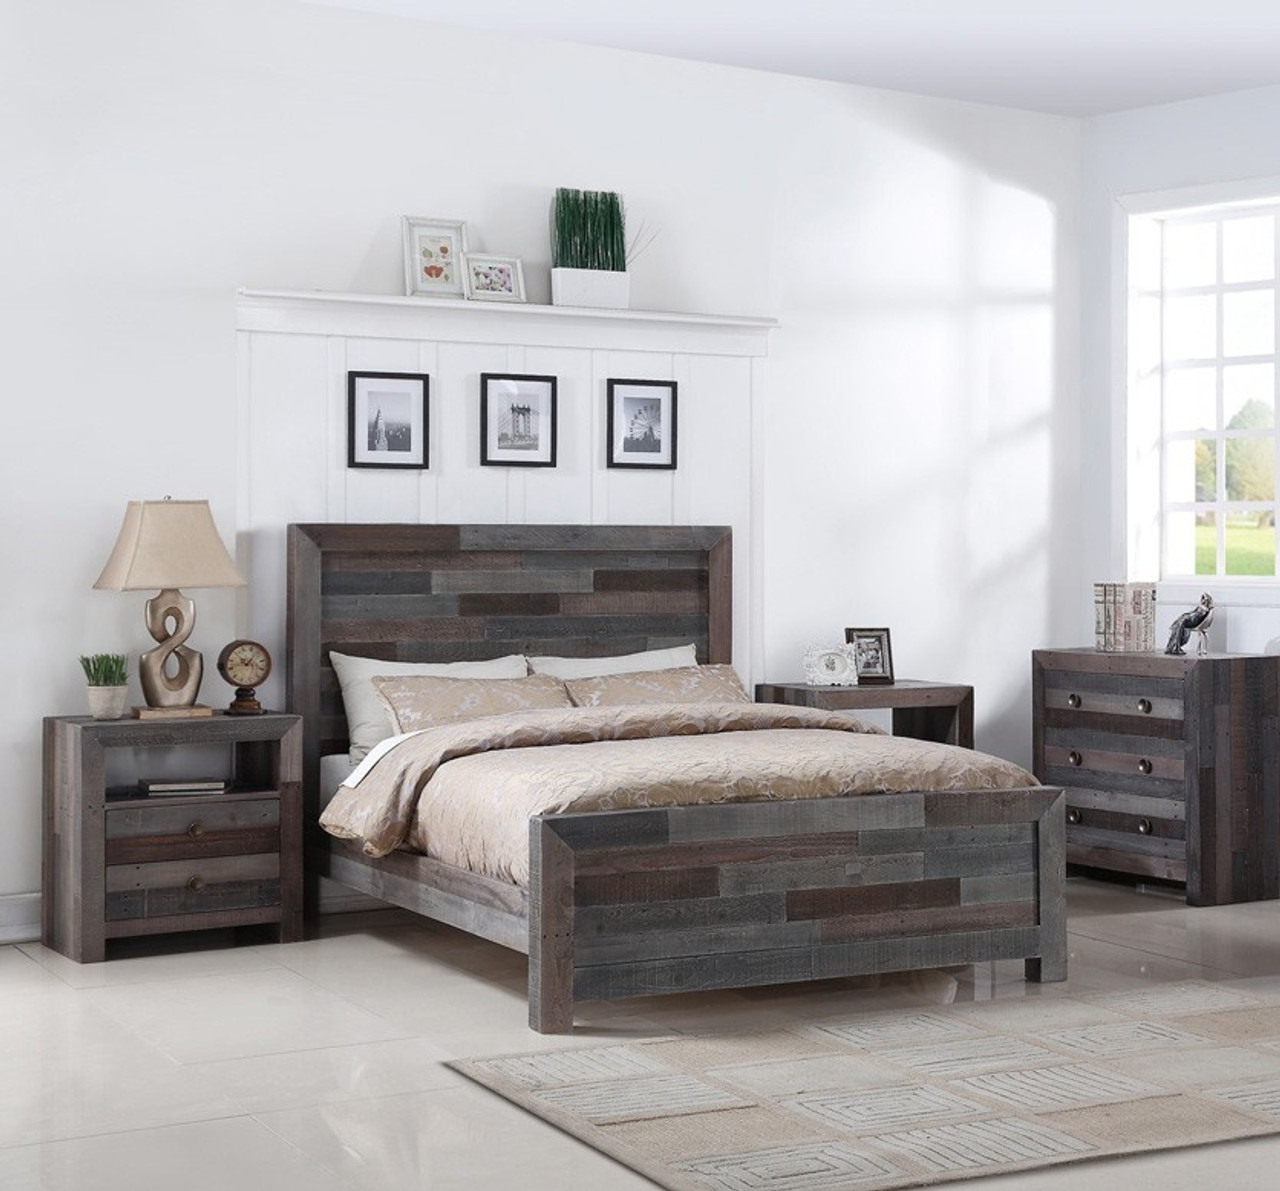 barns new furniture wood platform simple build barn bed reclaimed